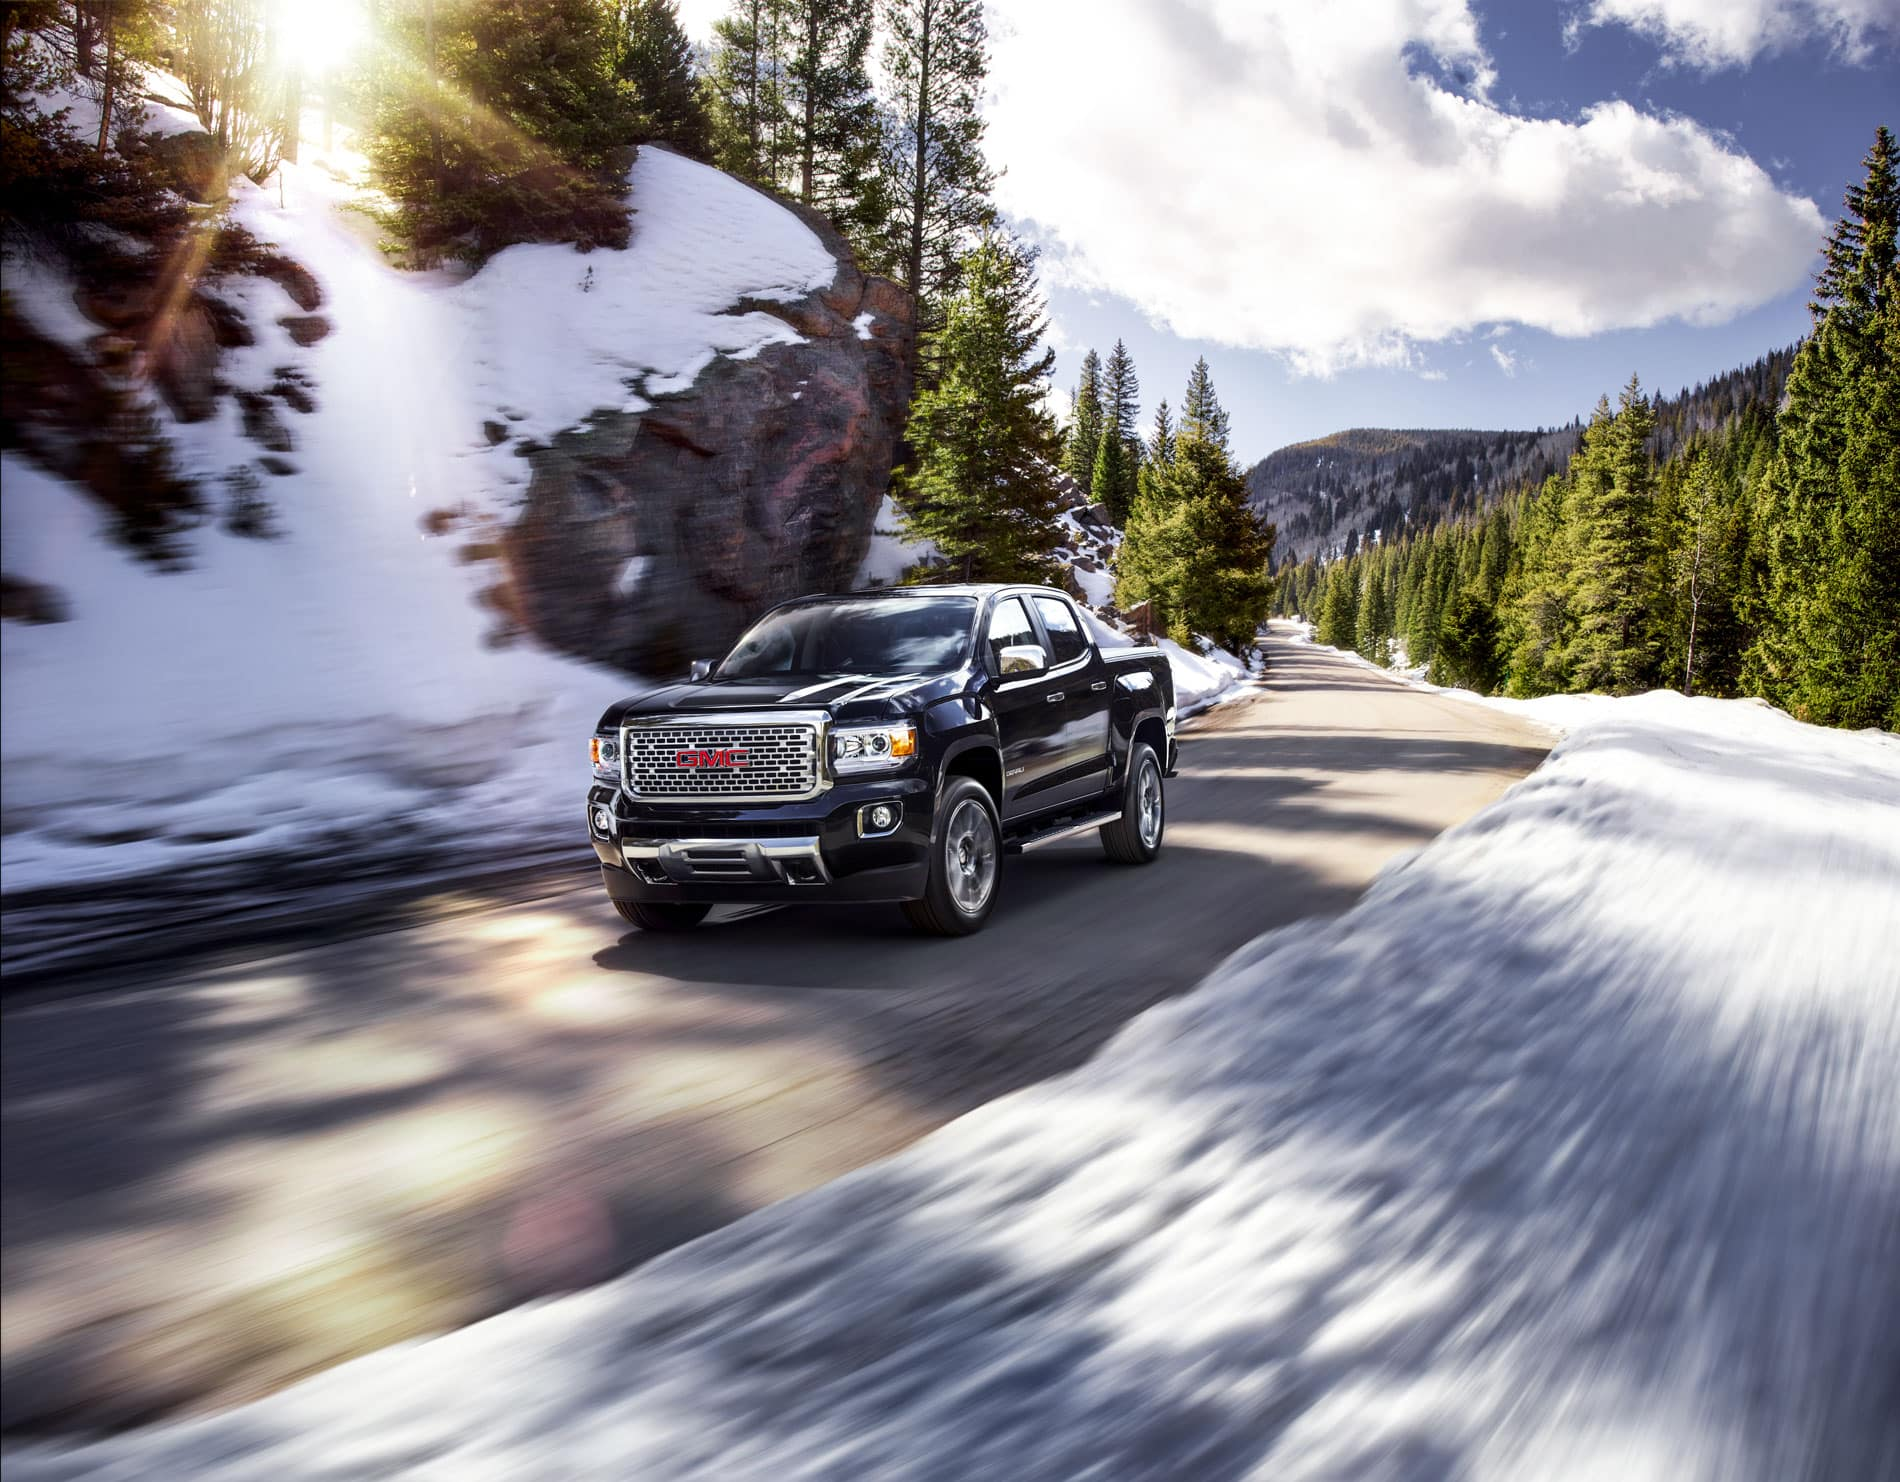 Chevy Colorado Vs Gmc Canyon Cross Town Sibling Showdown Trailer Wiring Harness Cruise America Finally The 2019 And Share A Range Topping Diesel Engine This 28 Liter Four Cylinder Turbo Cranks Out 186 Horsepower